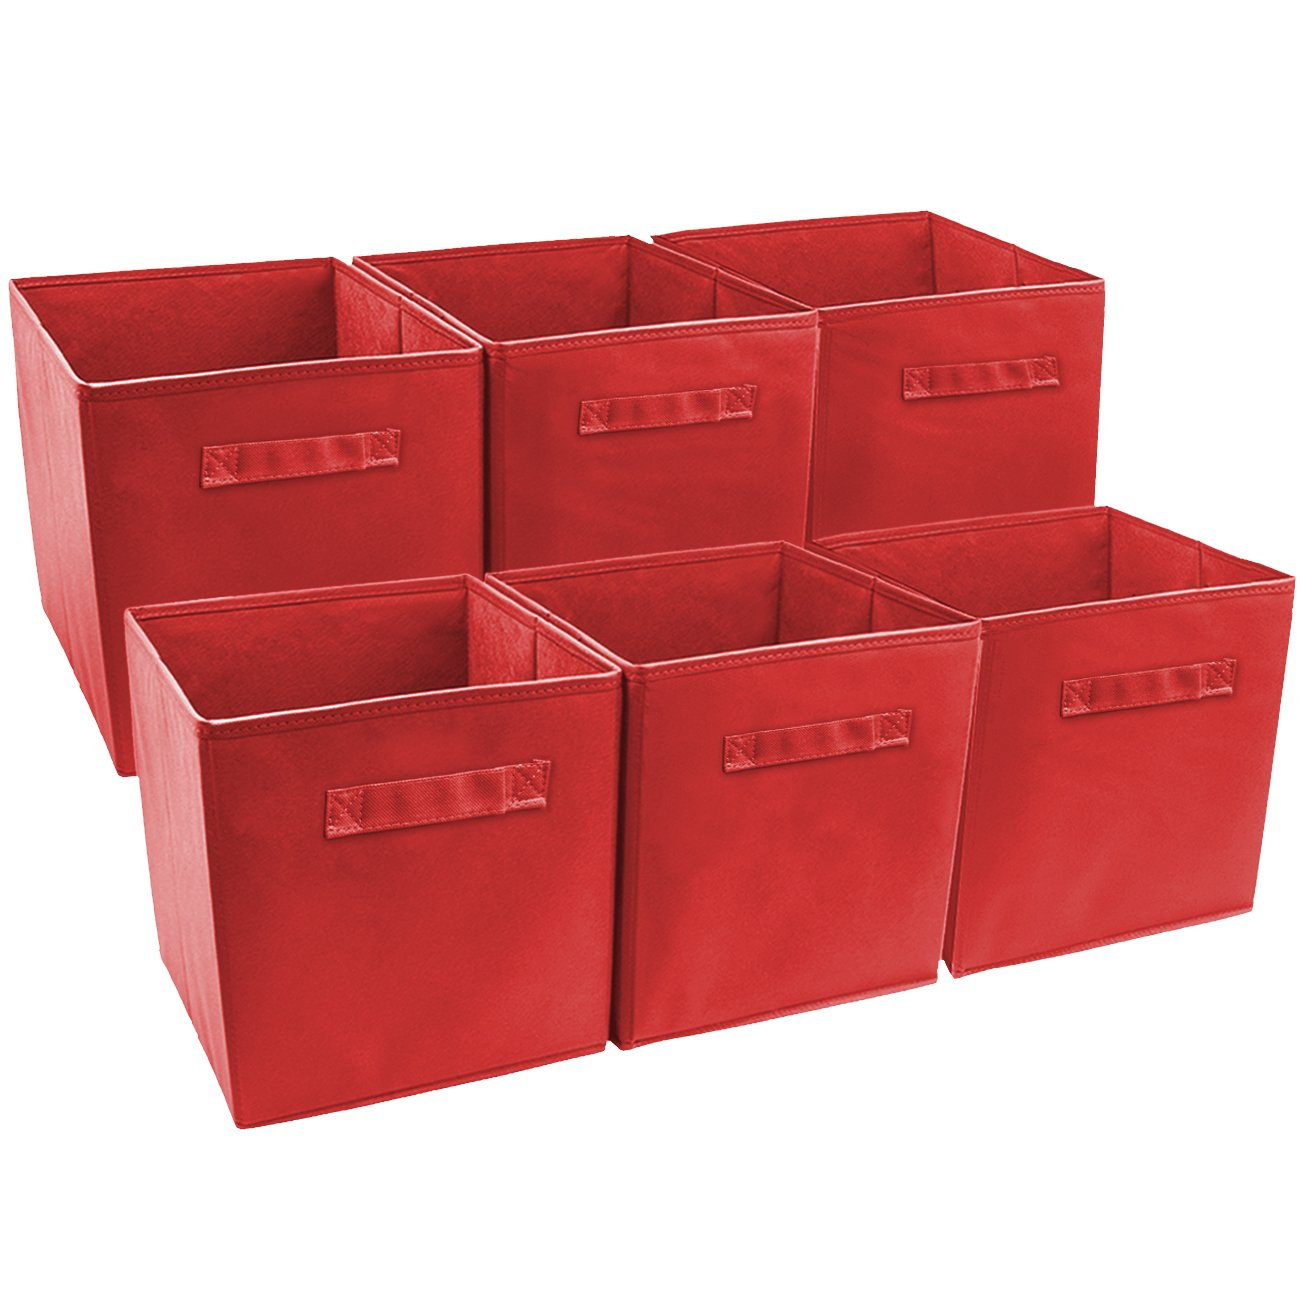 Sorbus® Foldable Storage Cube Basket Bin (6 Pack, Red) STRG-BIN-R-6PK